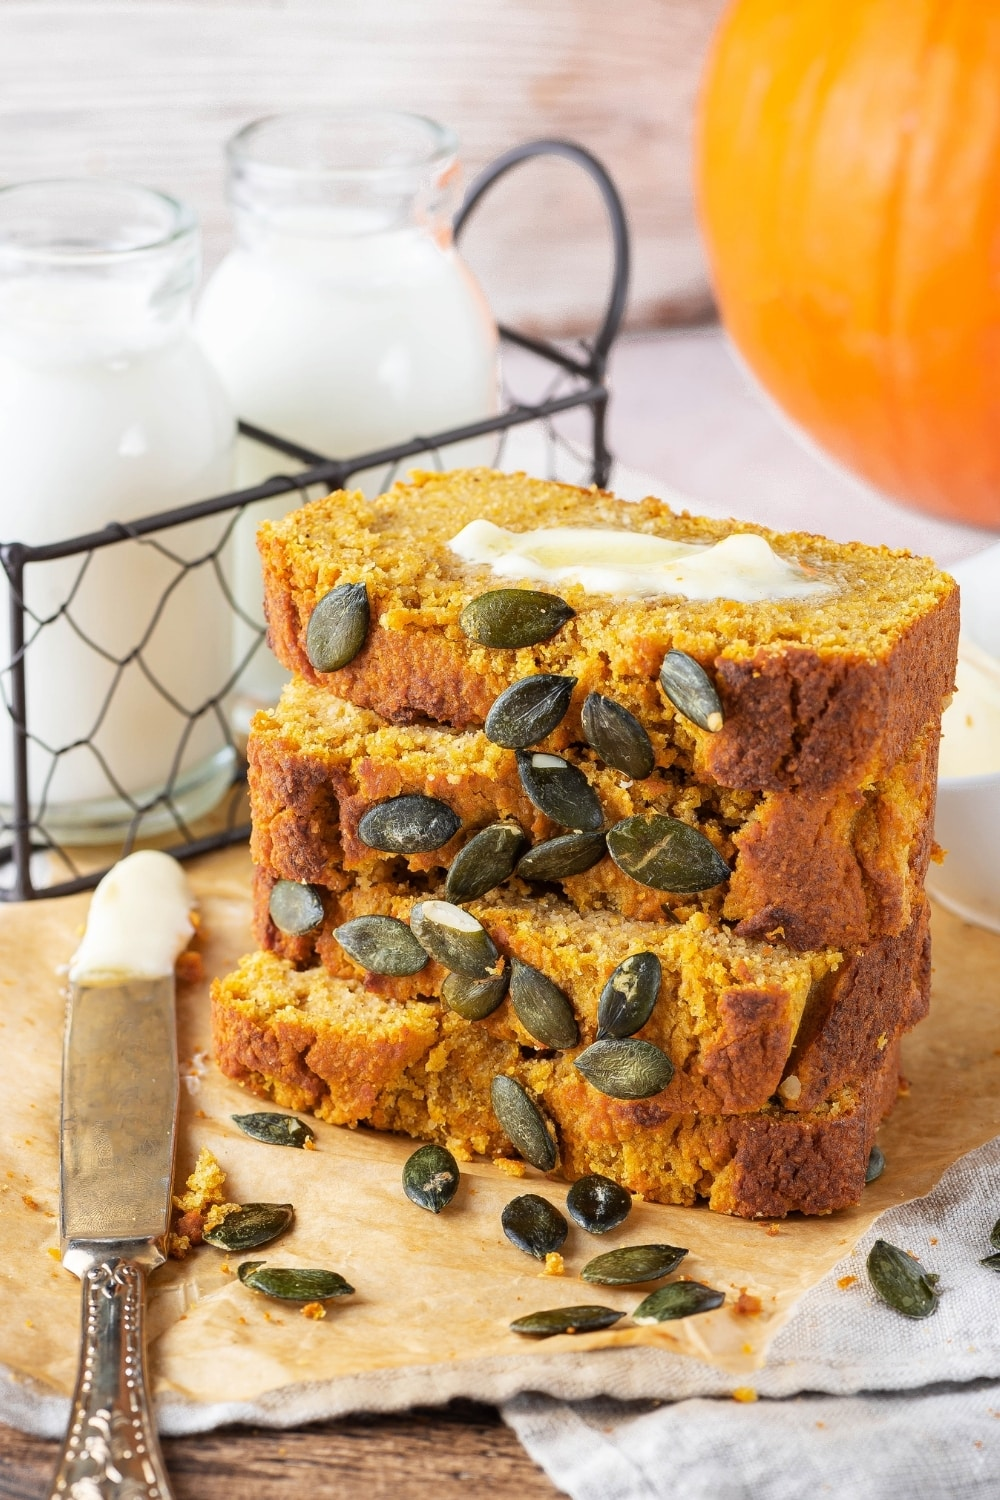 Four slices of pumpkin bread stack on top of one another on a piece of parchment paper on a gray table cloth. There are some pumpkin seeds in front of the slices and there is a knife to the left of them with butter on it. Behind the stack of pumpkin bread is of wire holder with two glass jars of milk.